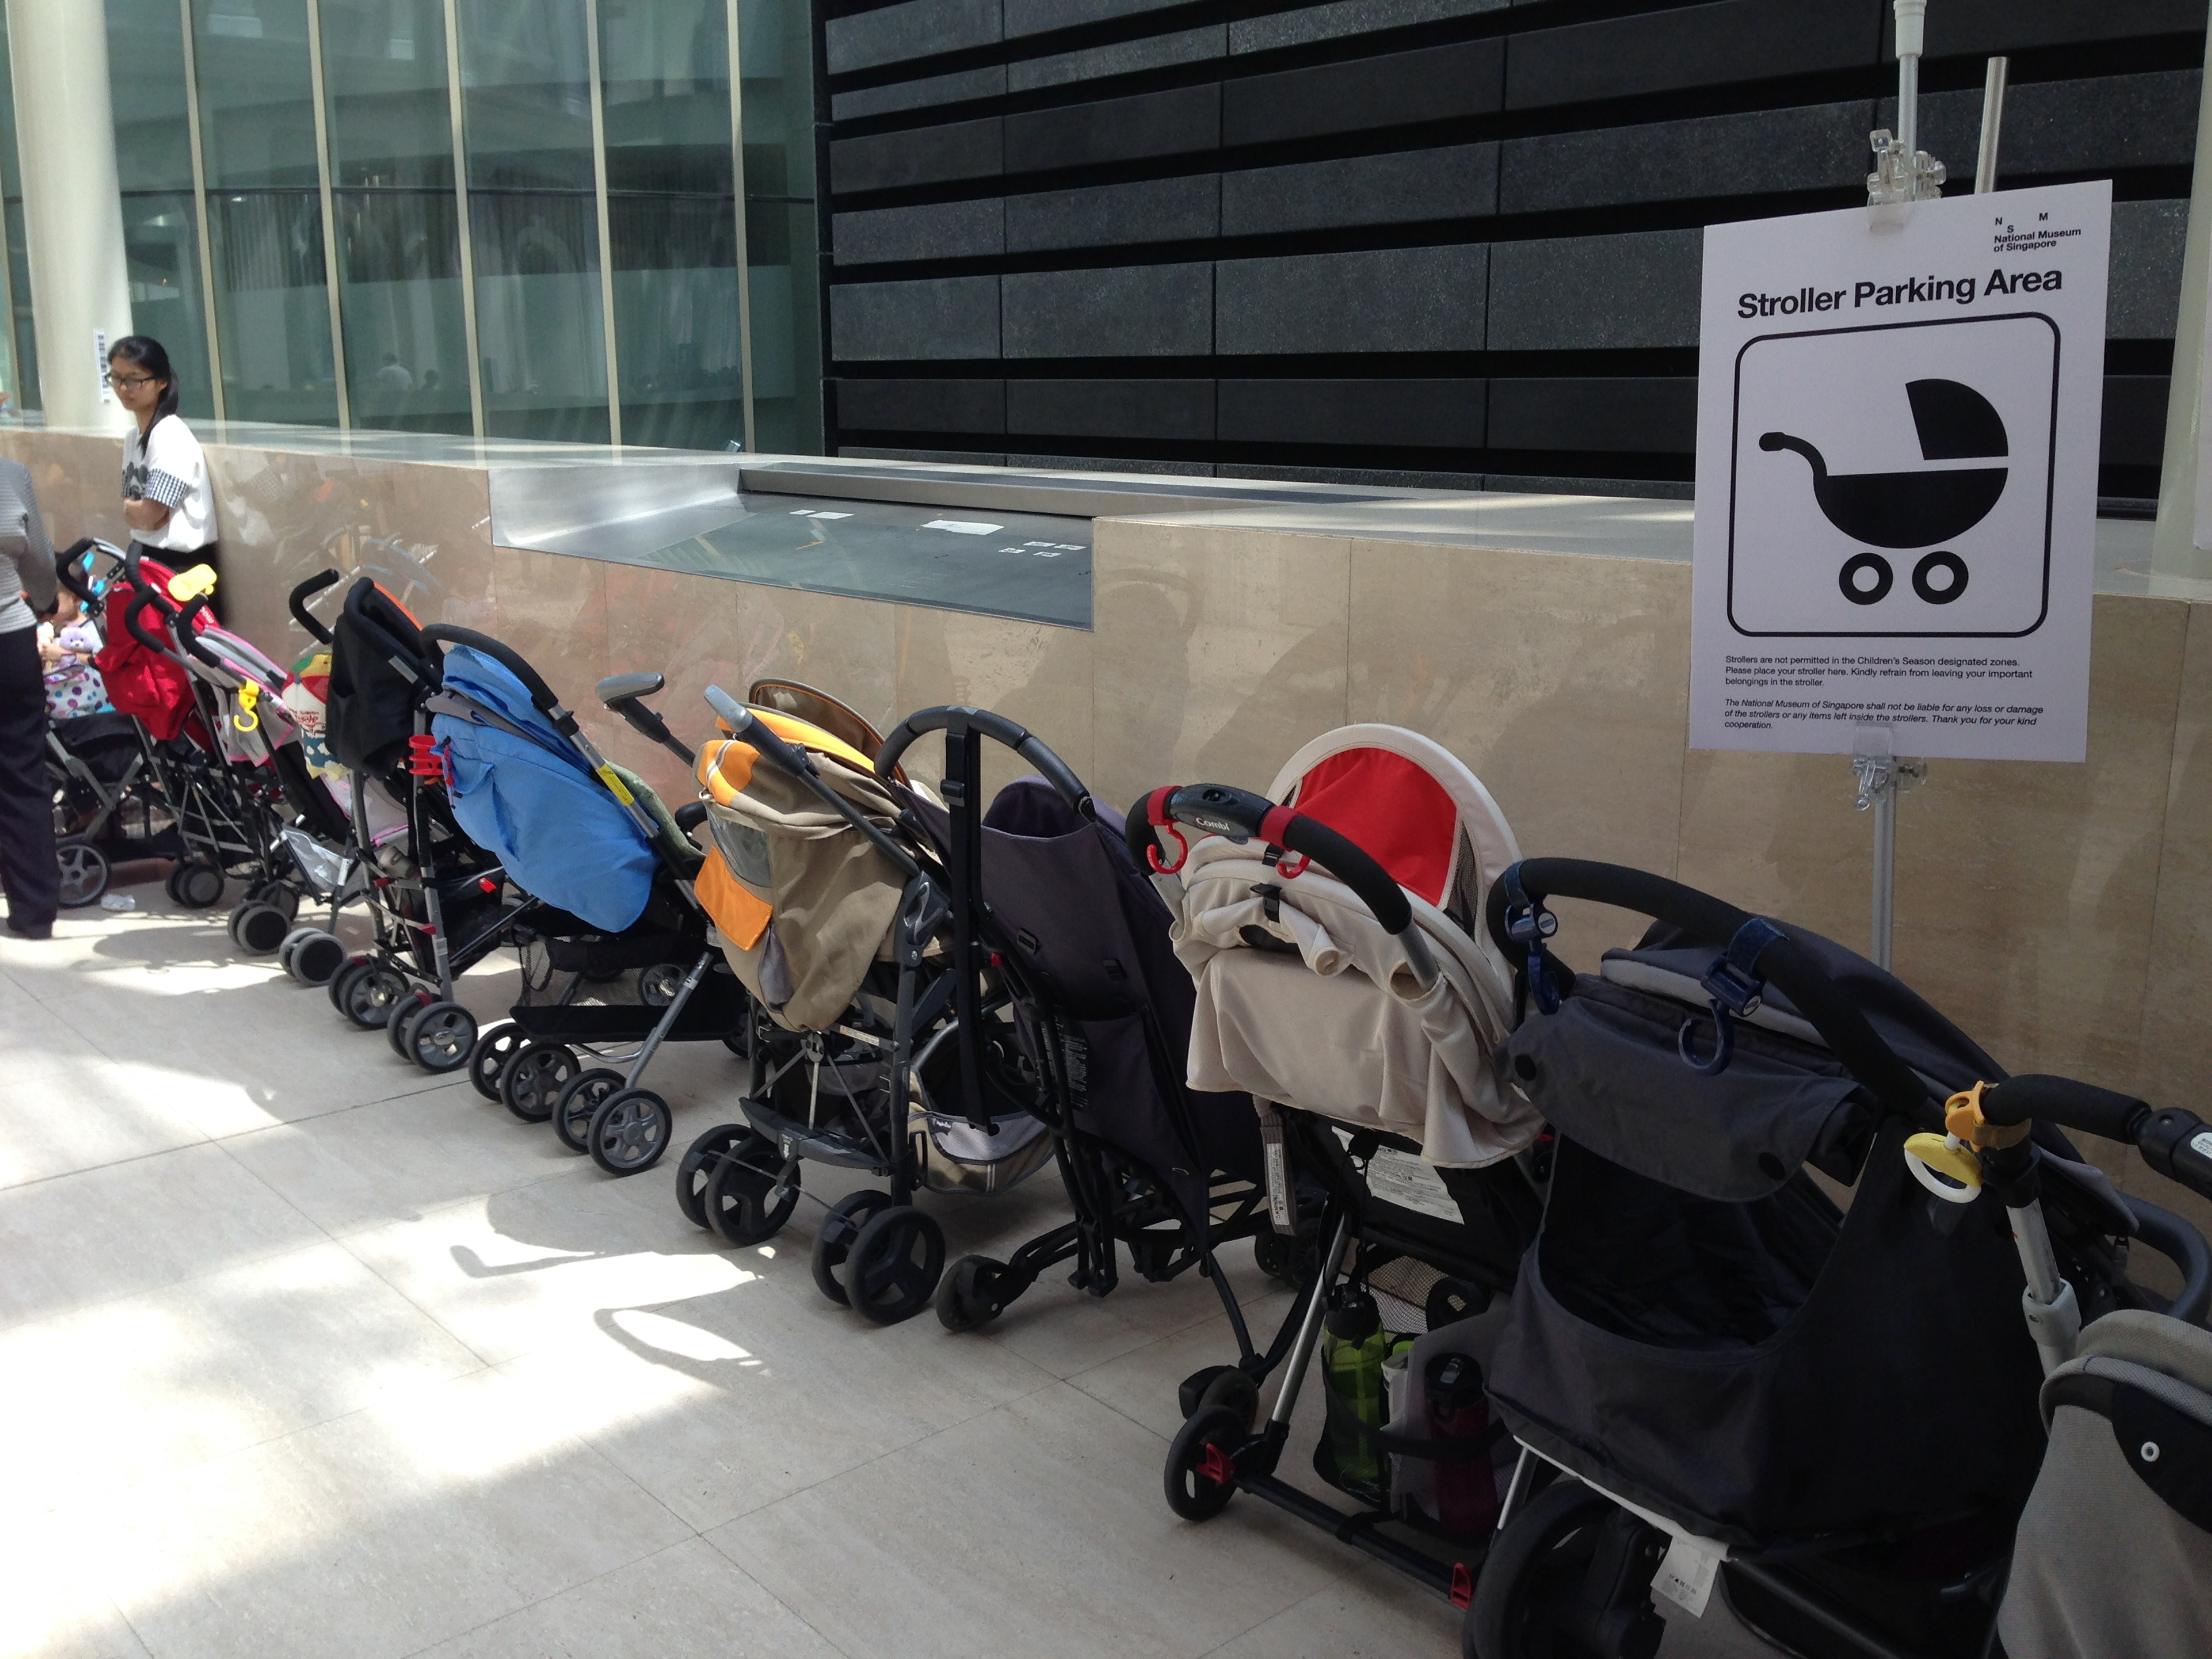 File:Temporary stroller parking area, National Museum of Singapore ...